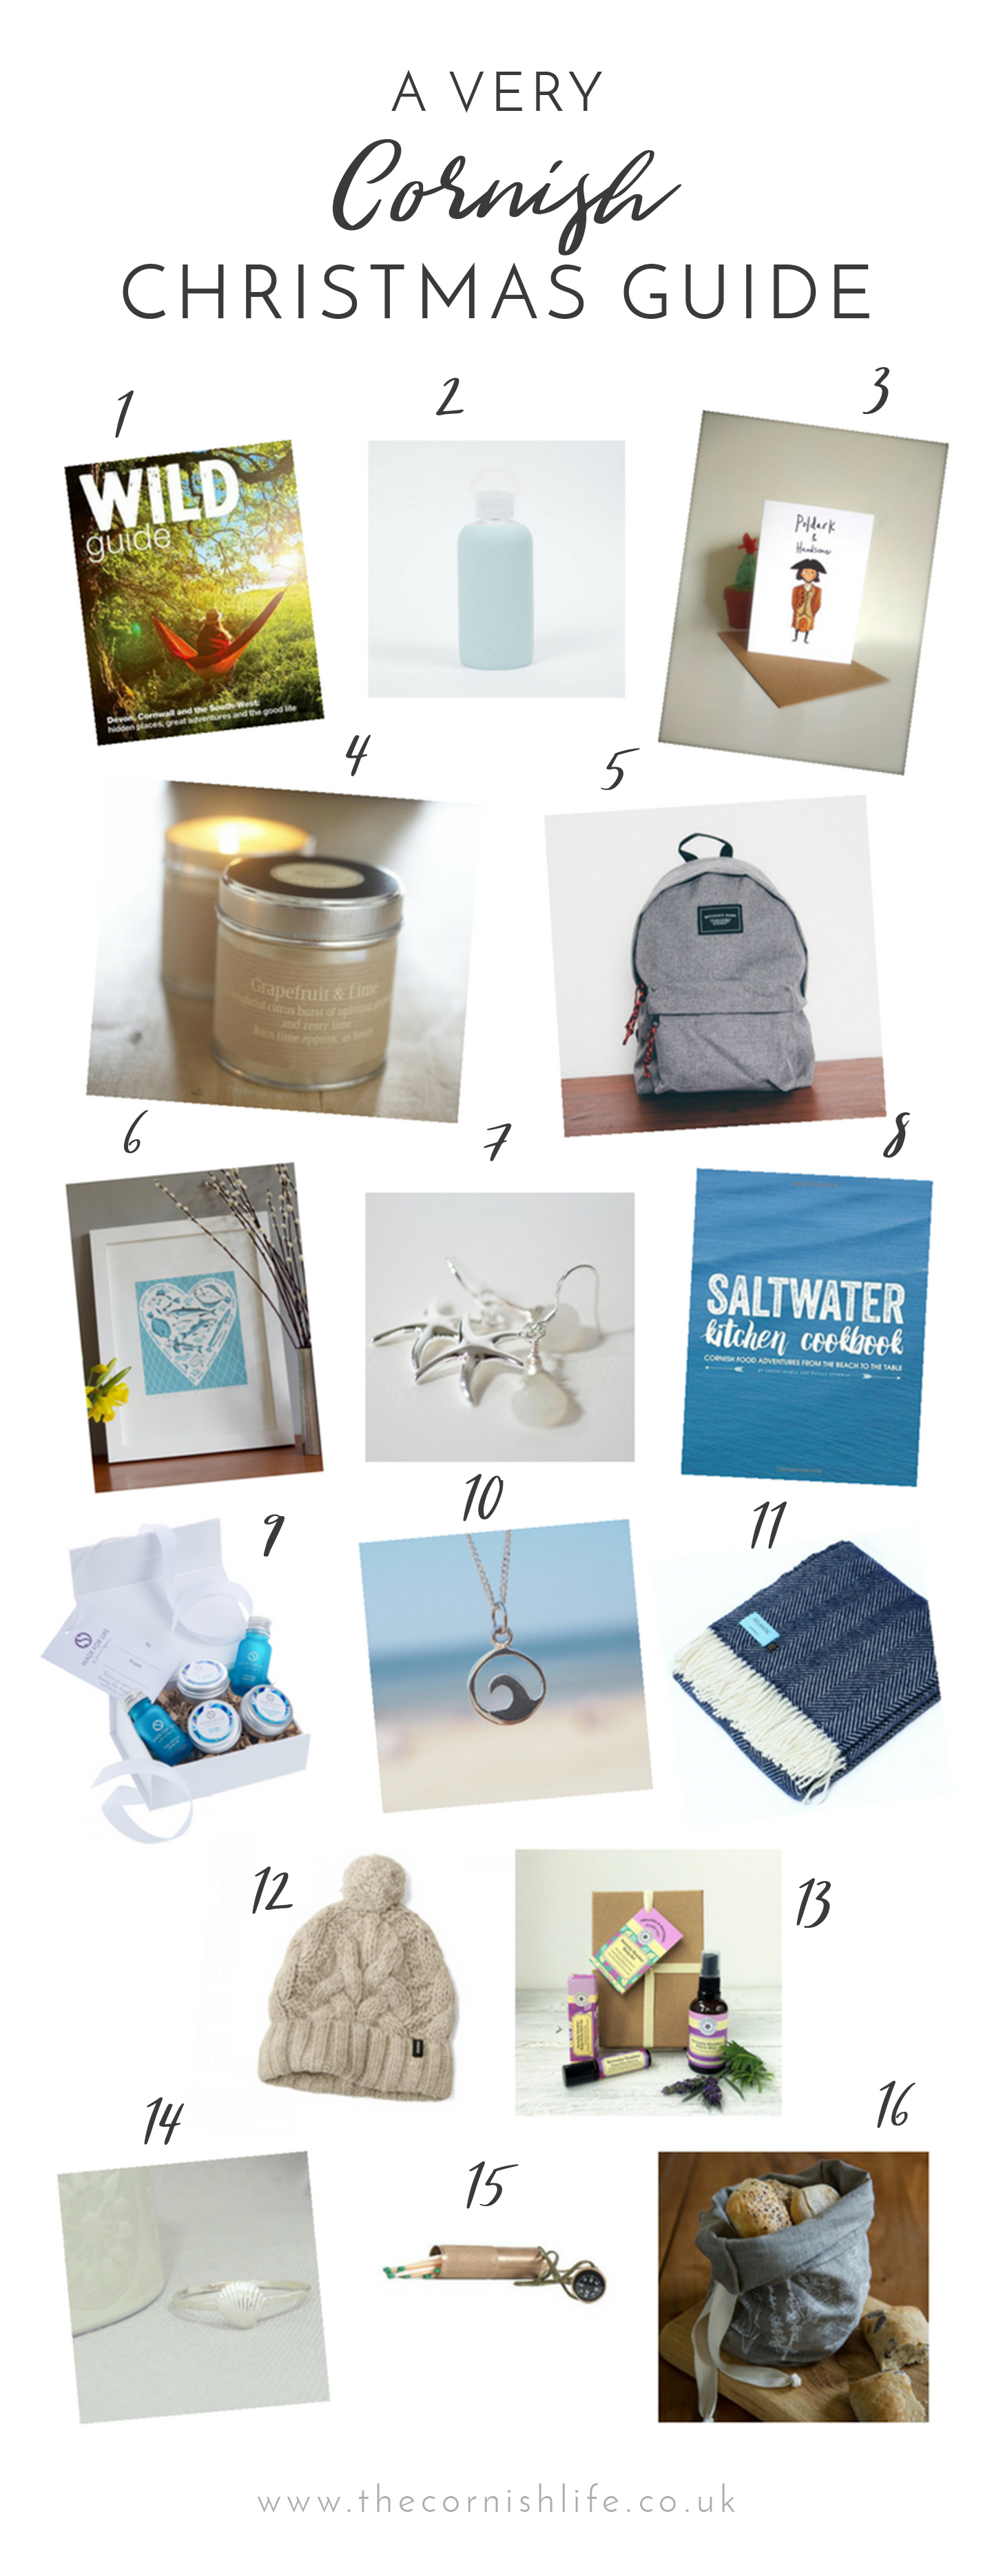 A Very Cornish Christmas Gift Guide